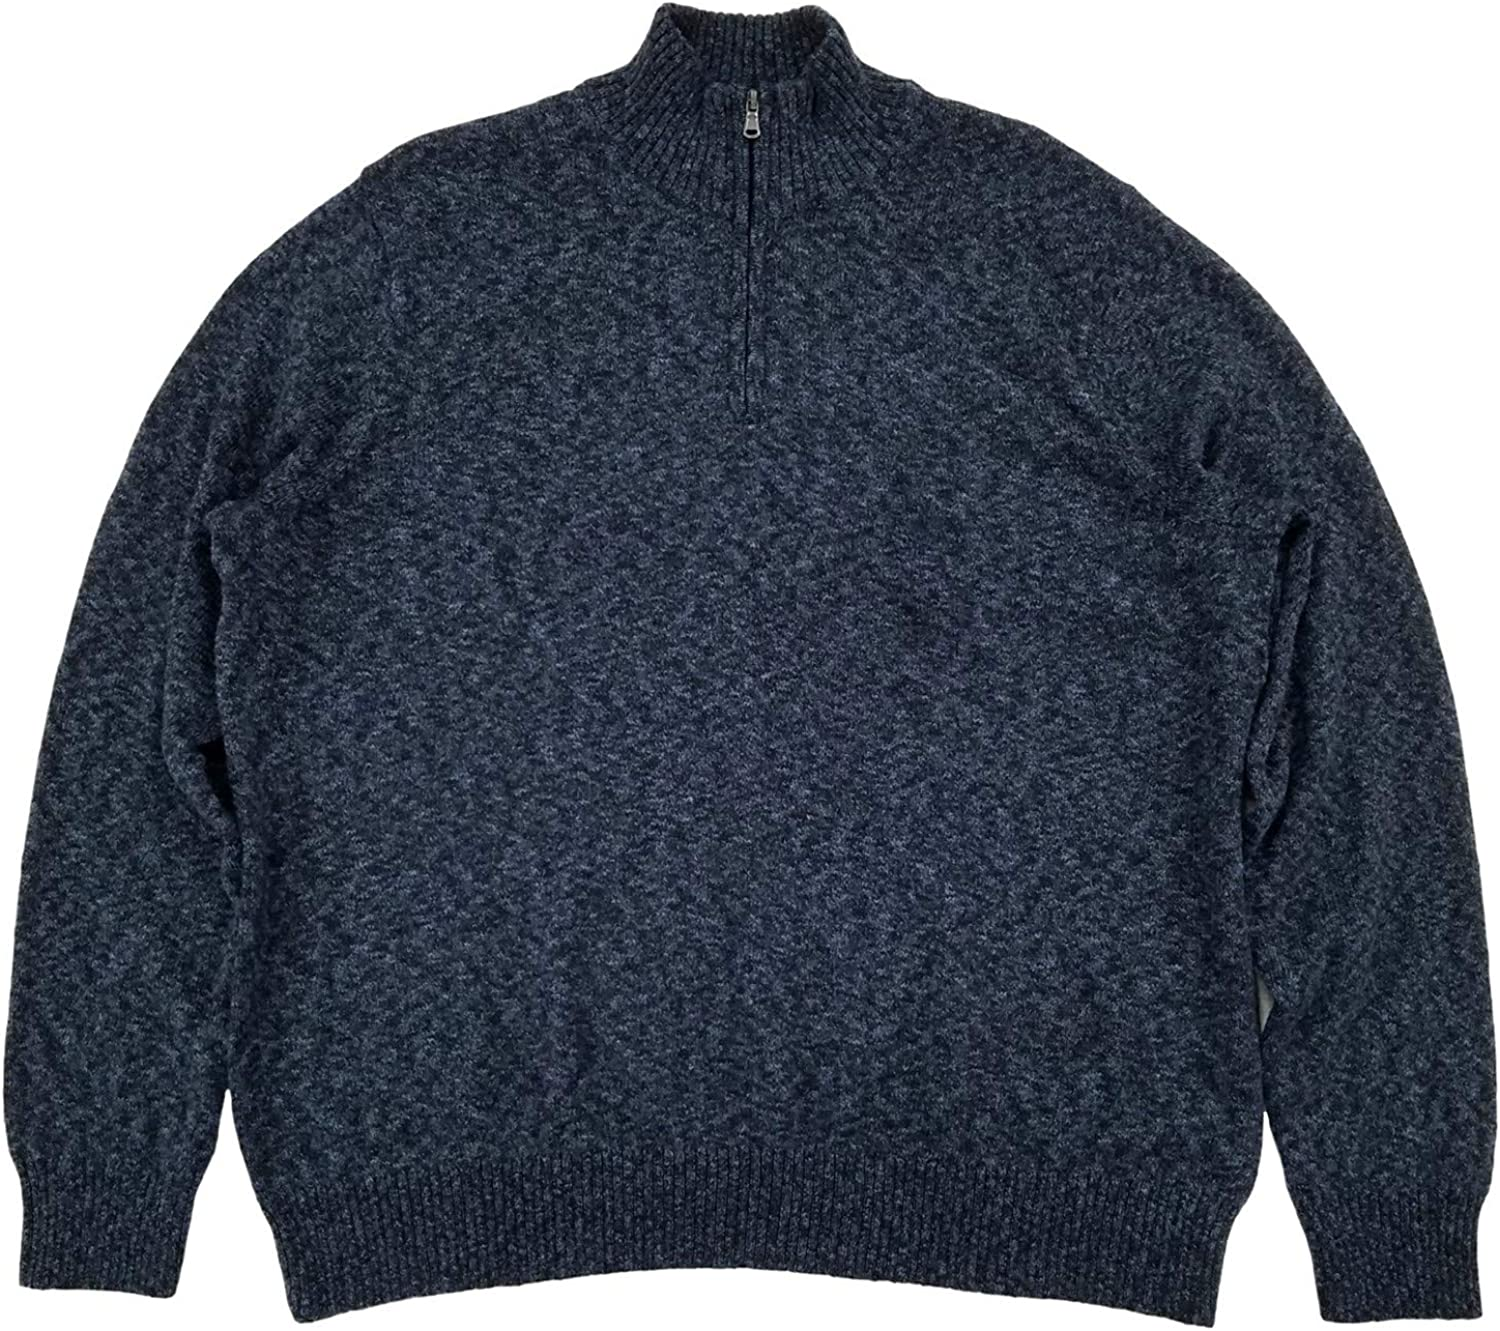 Mens Blue Heather Extra Soft Quarter Zip Sweater Pullover Top